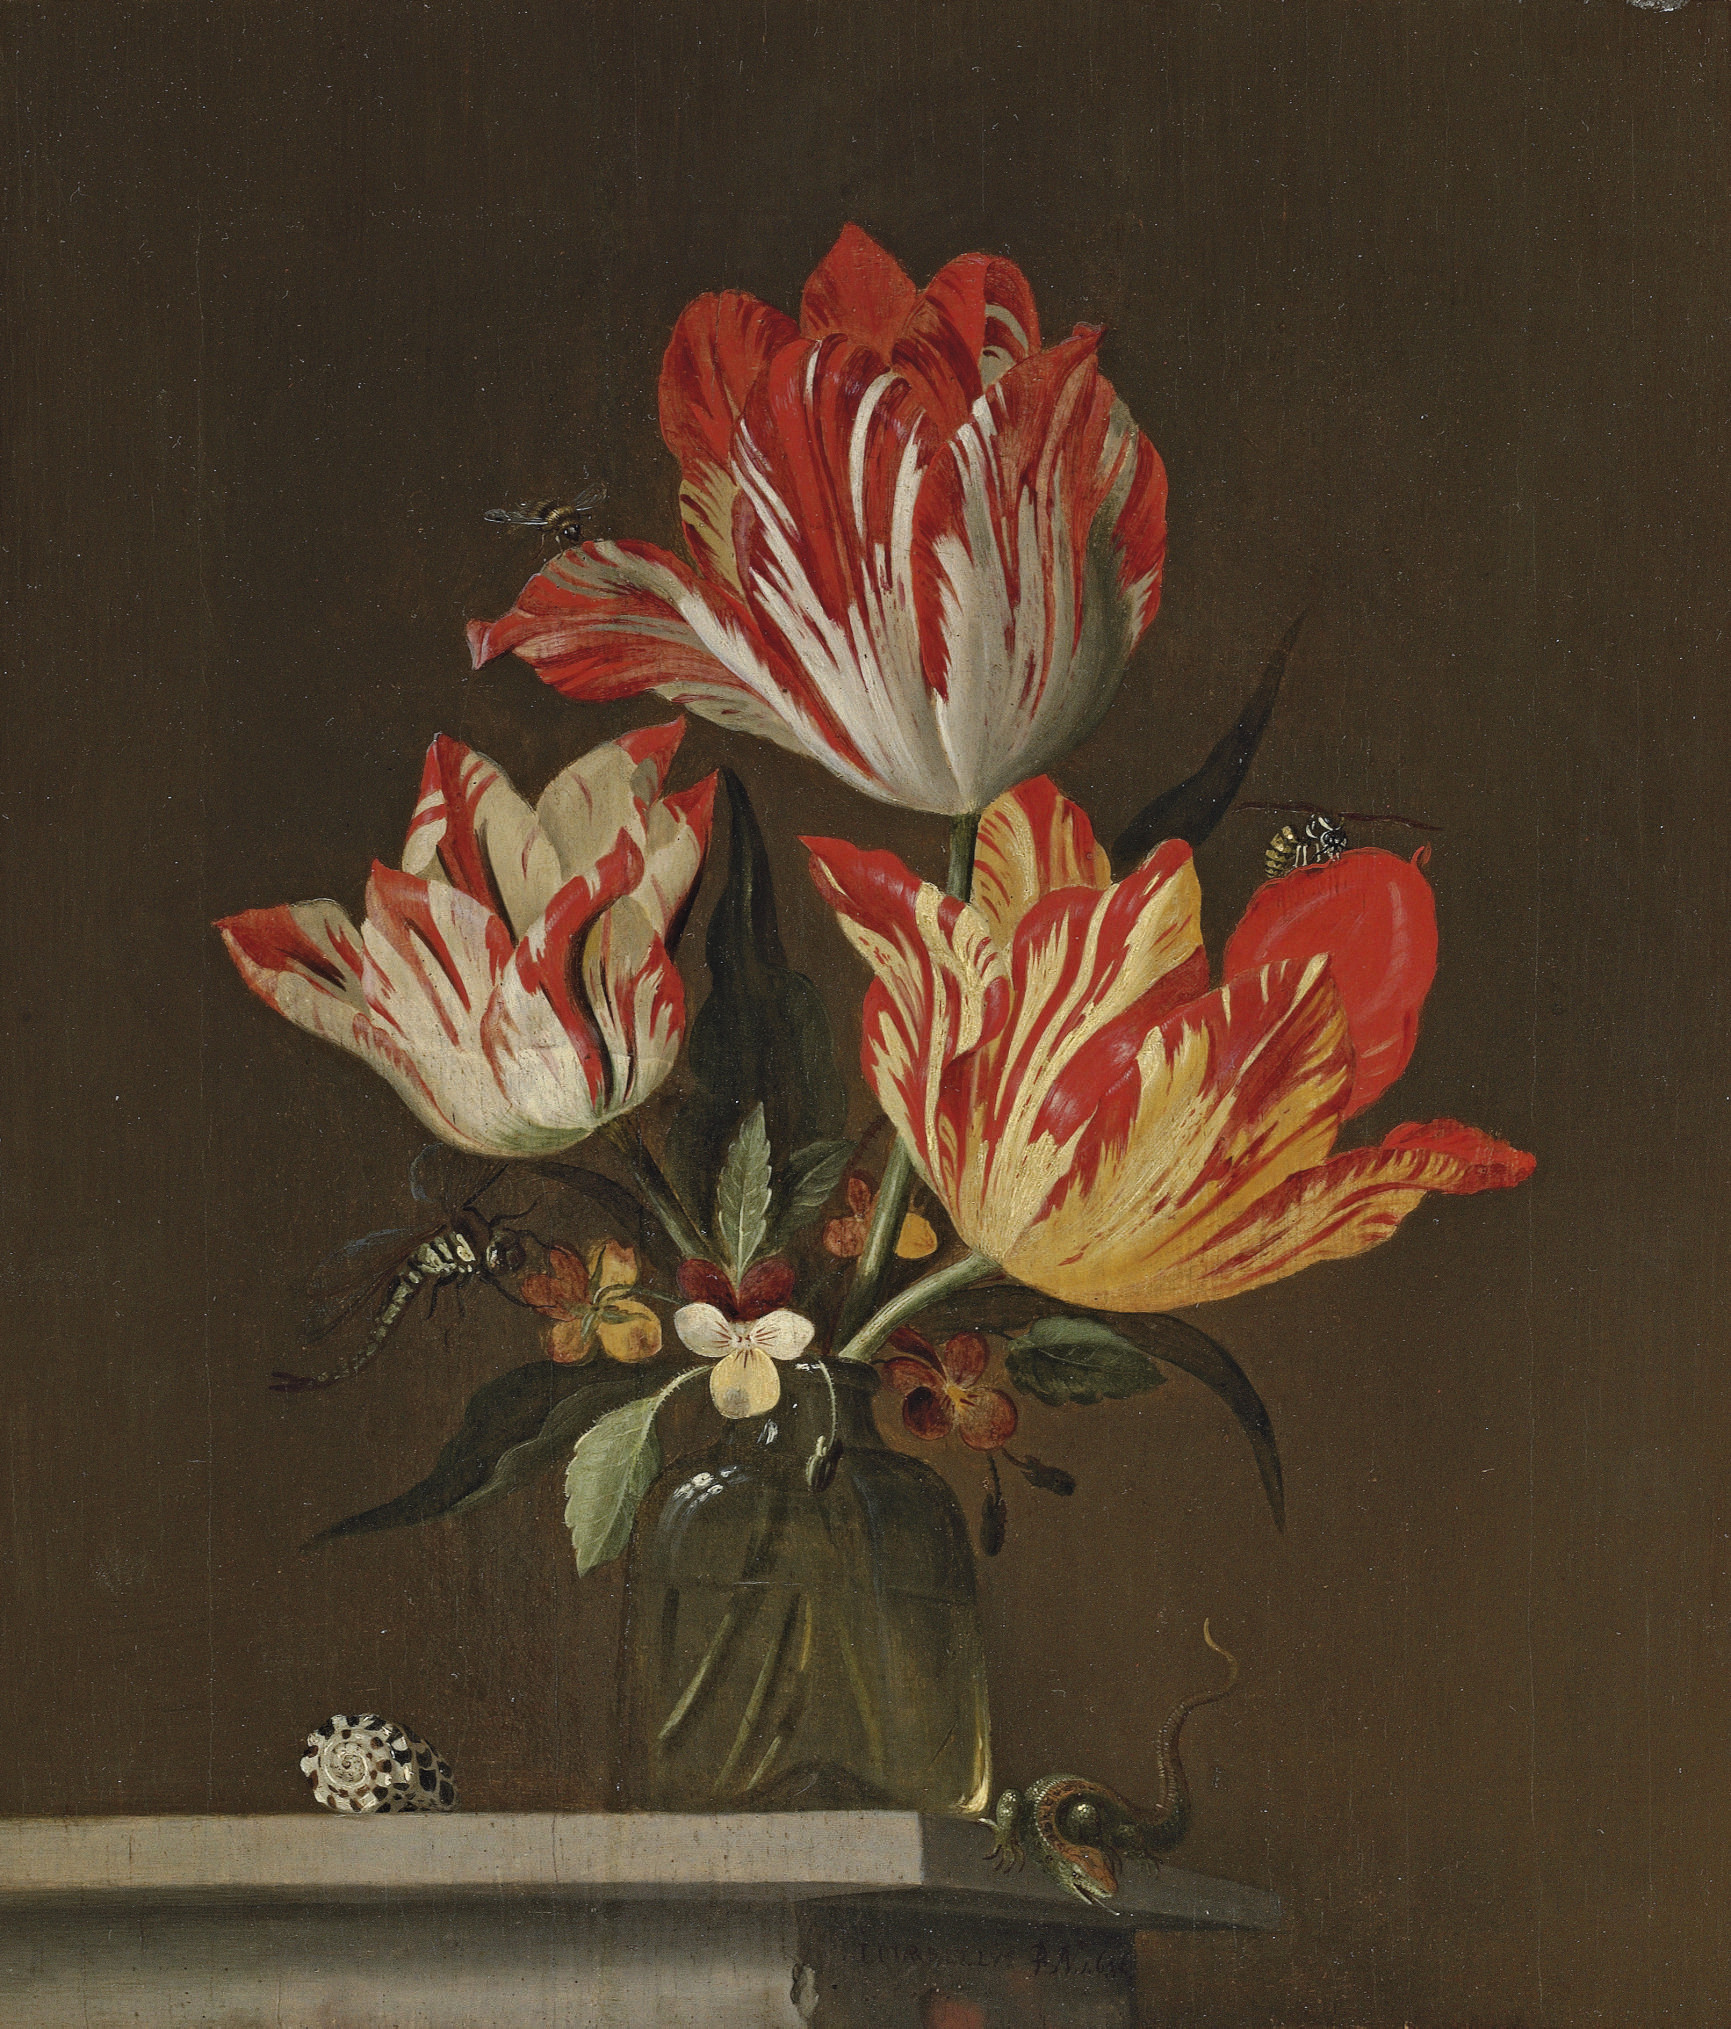 Tulips and violets in a vase, with a shell, a lizard, a dragonfly, a bee and a wasp, on a ledge